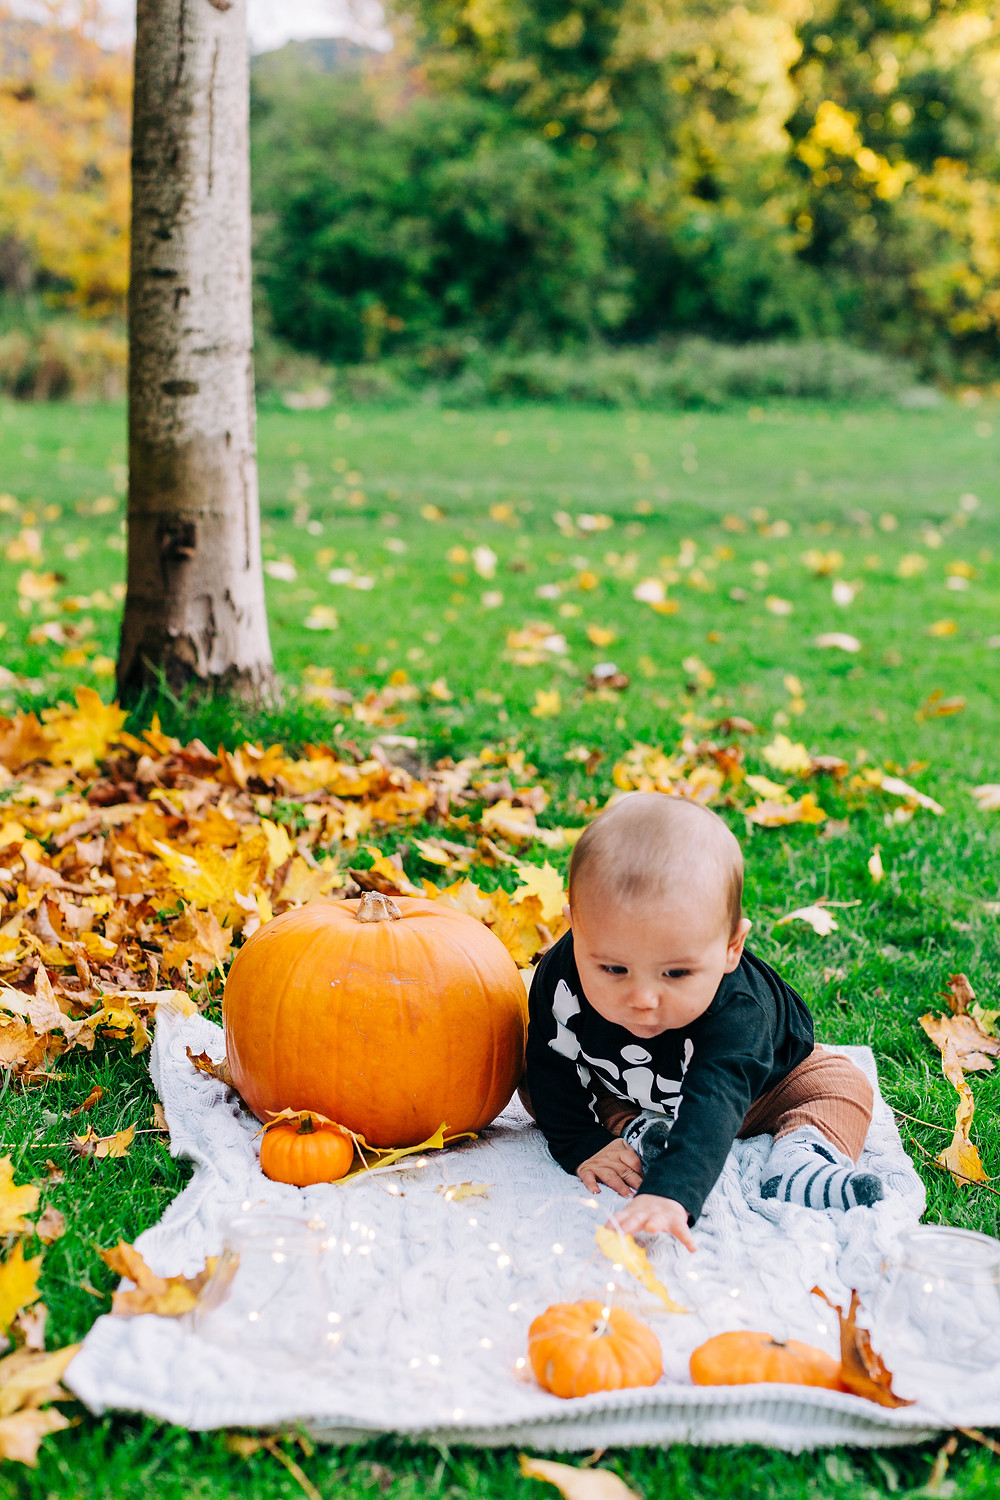 Baby sitting on blanket with pumpkins and fairy lights in autumnal Heaton Park, Newcastle